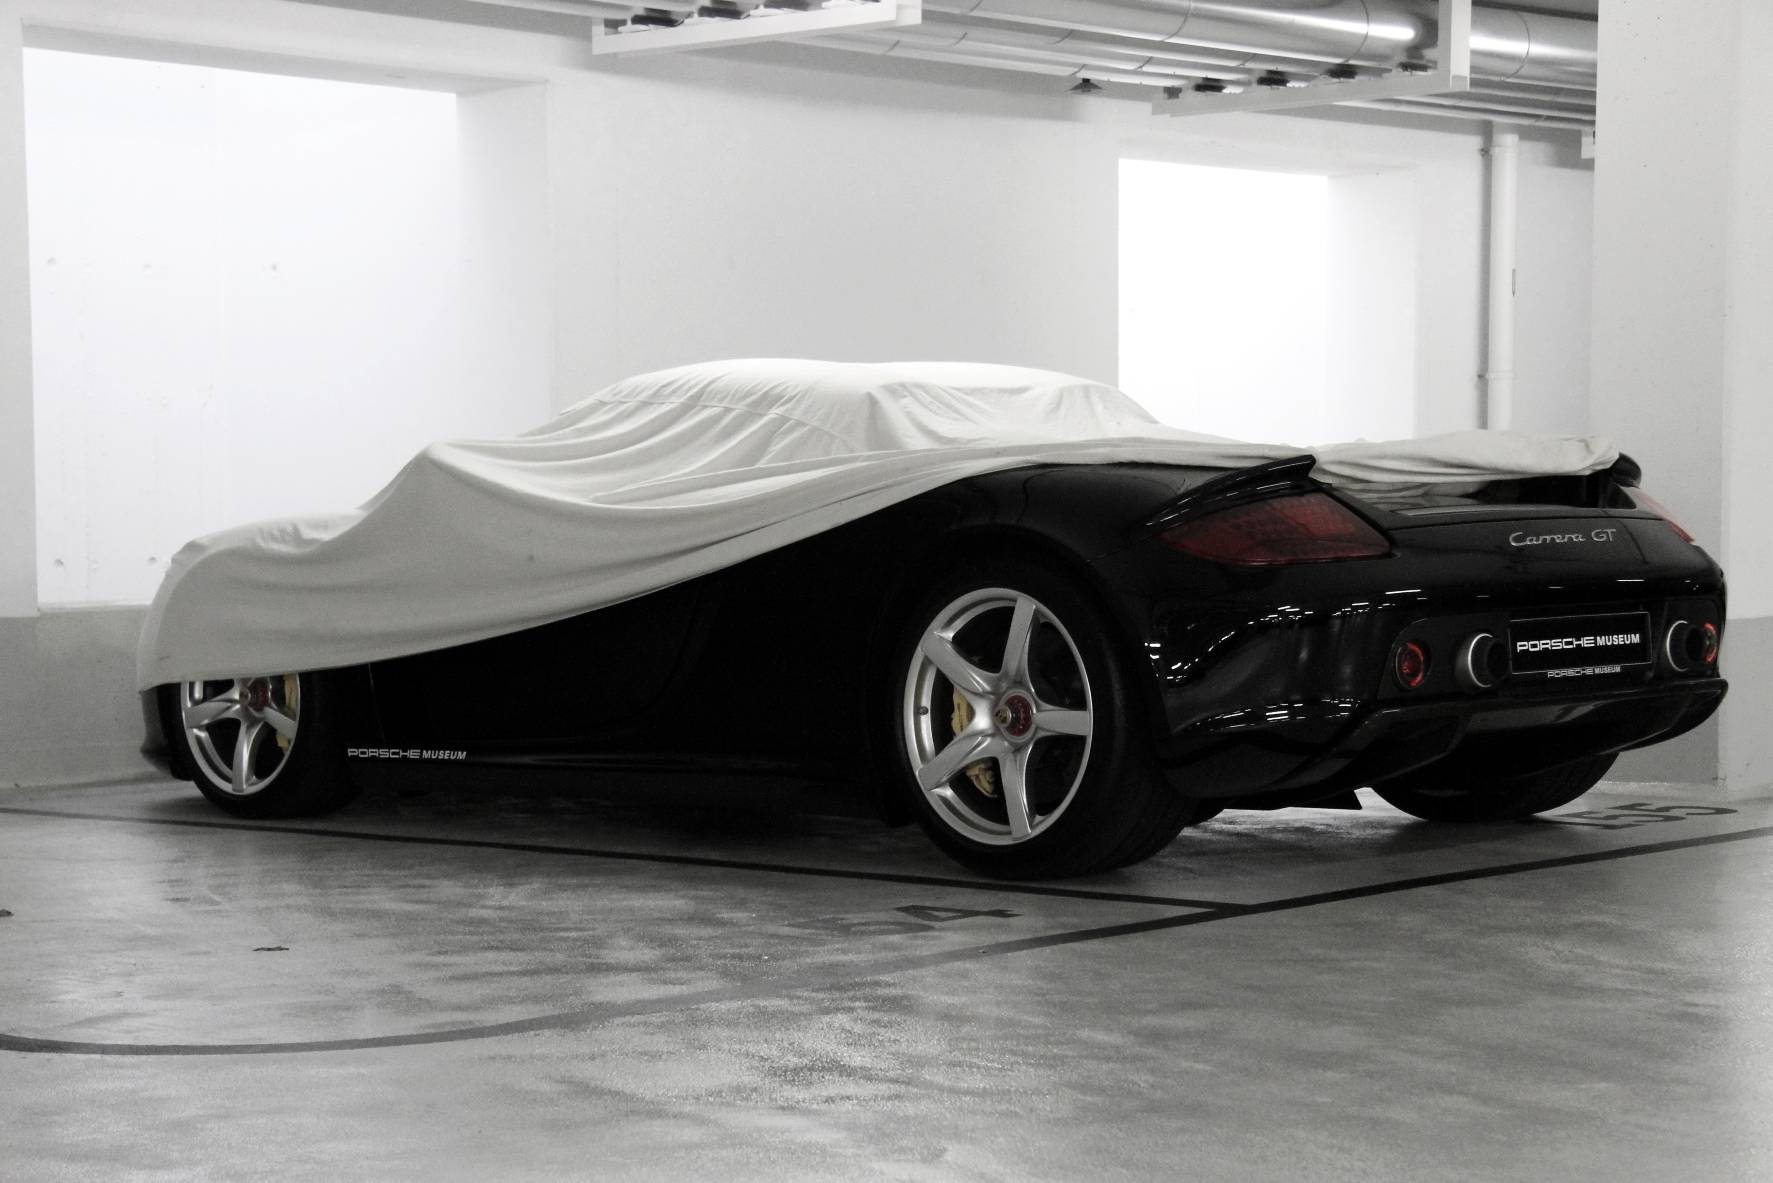 Porsche Carrera GT covered @ Porsche Museum